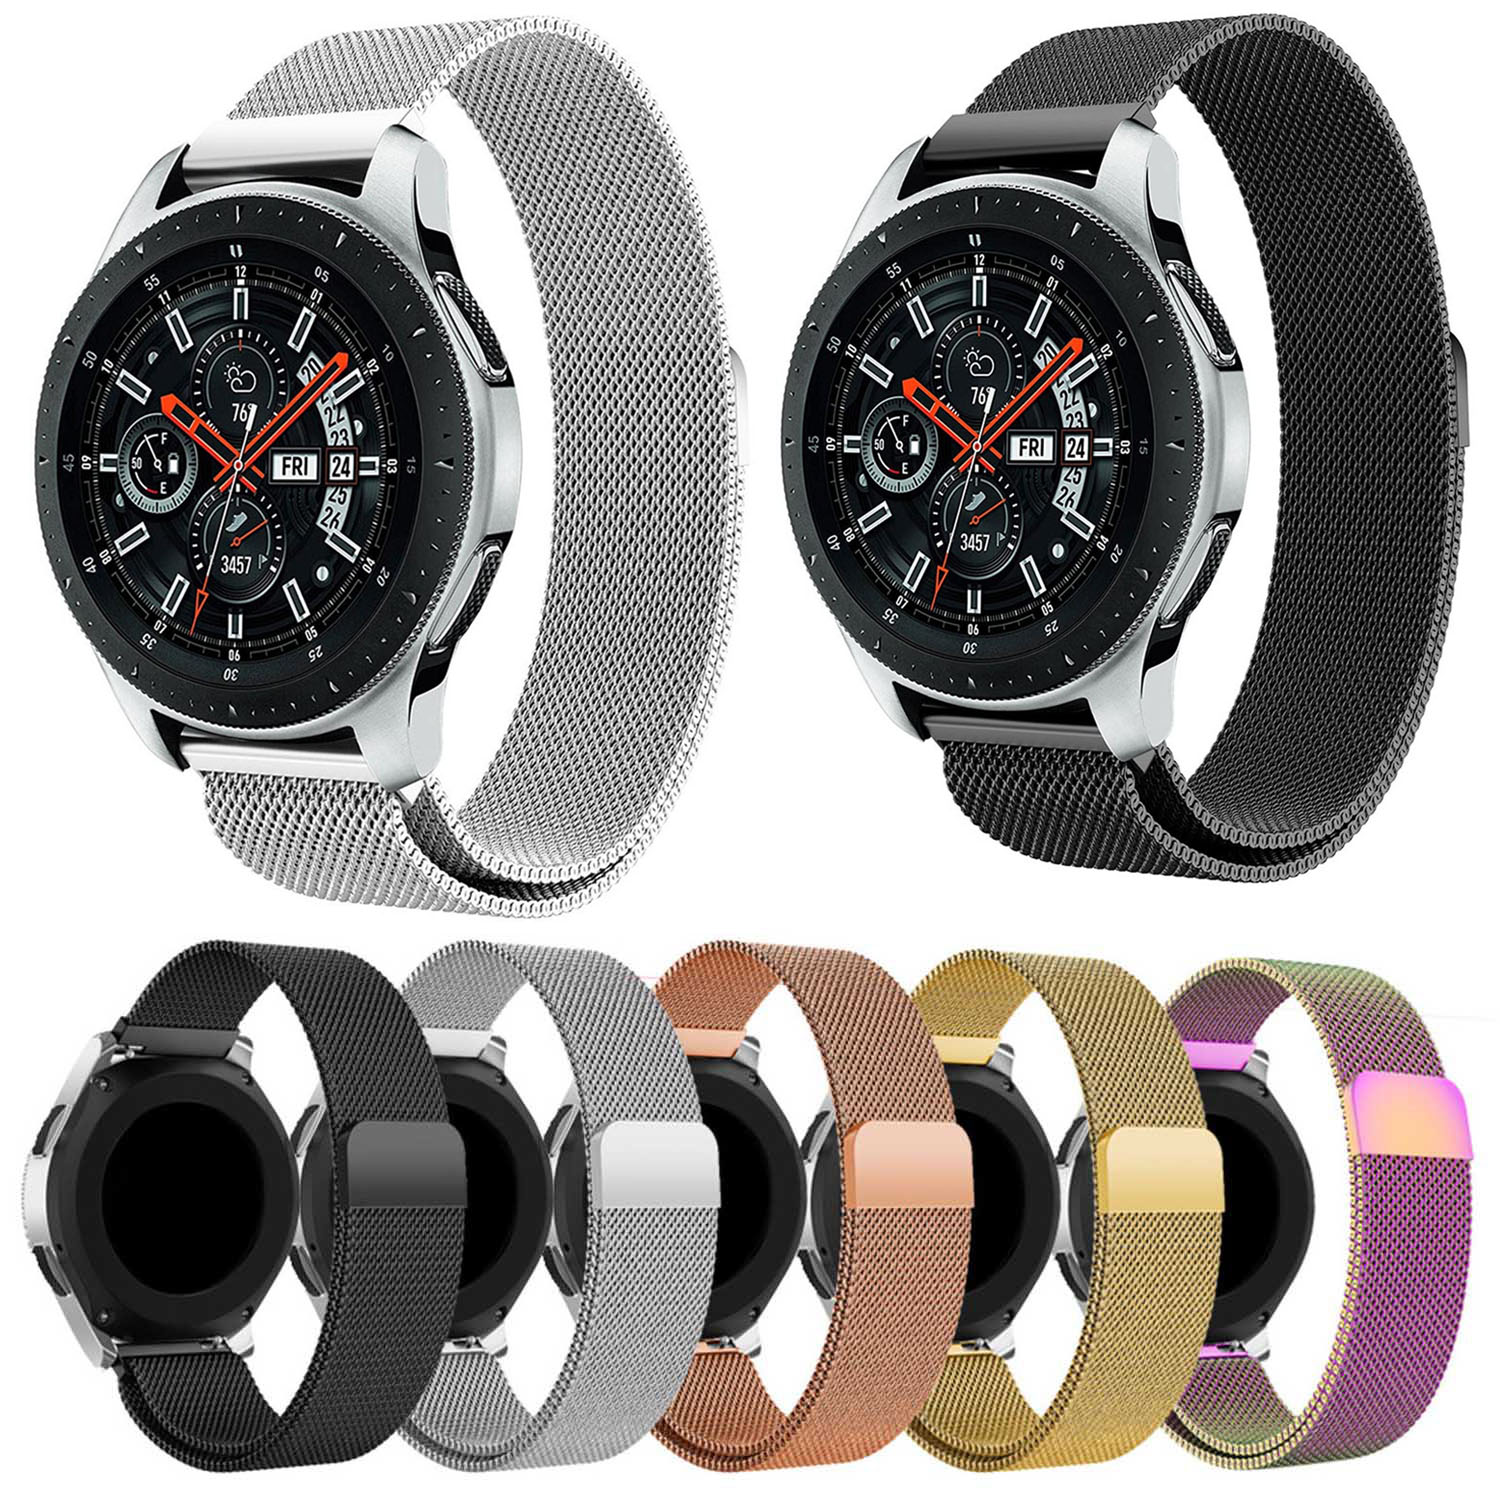 Milanese Magnetic Loop Stainless Steel Wristband for Samsung Galaxy Watch 46mm Band Strap 22mm Width Watchbands все цены